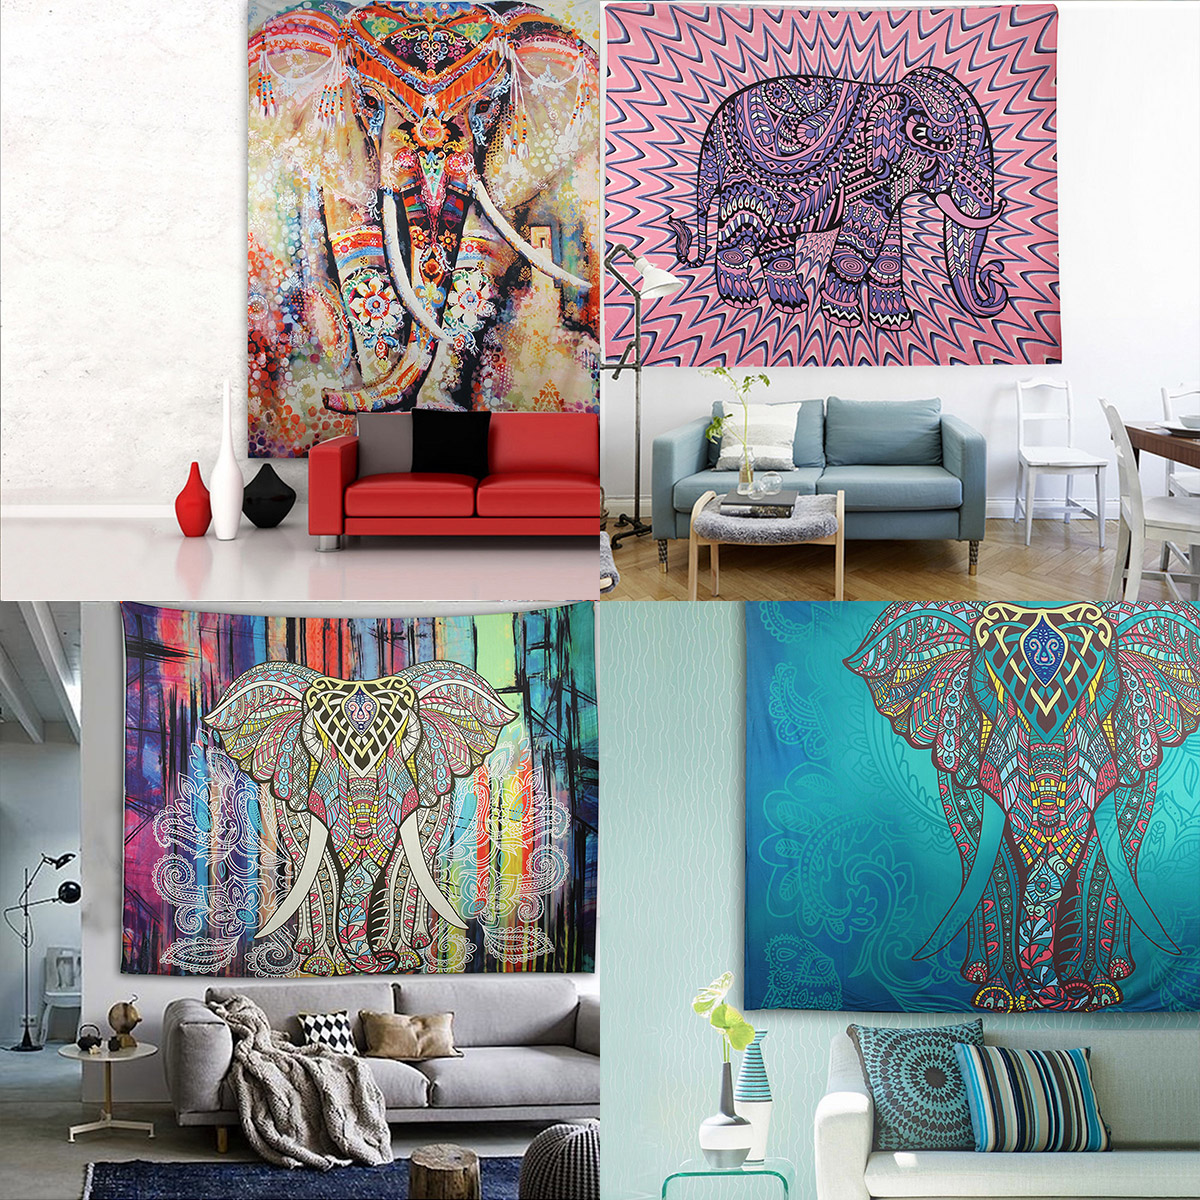 Elephant Mandala Tapestry Throw Towel Hippie Tapestry Floral Printed Home Decor Wall Tapestries Bedspread 210*150CM 1